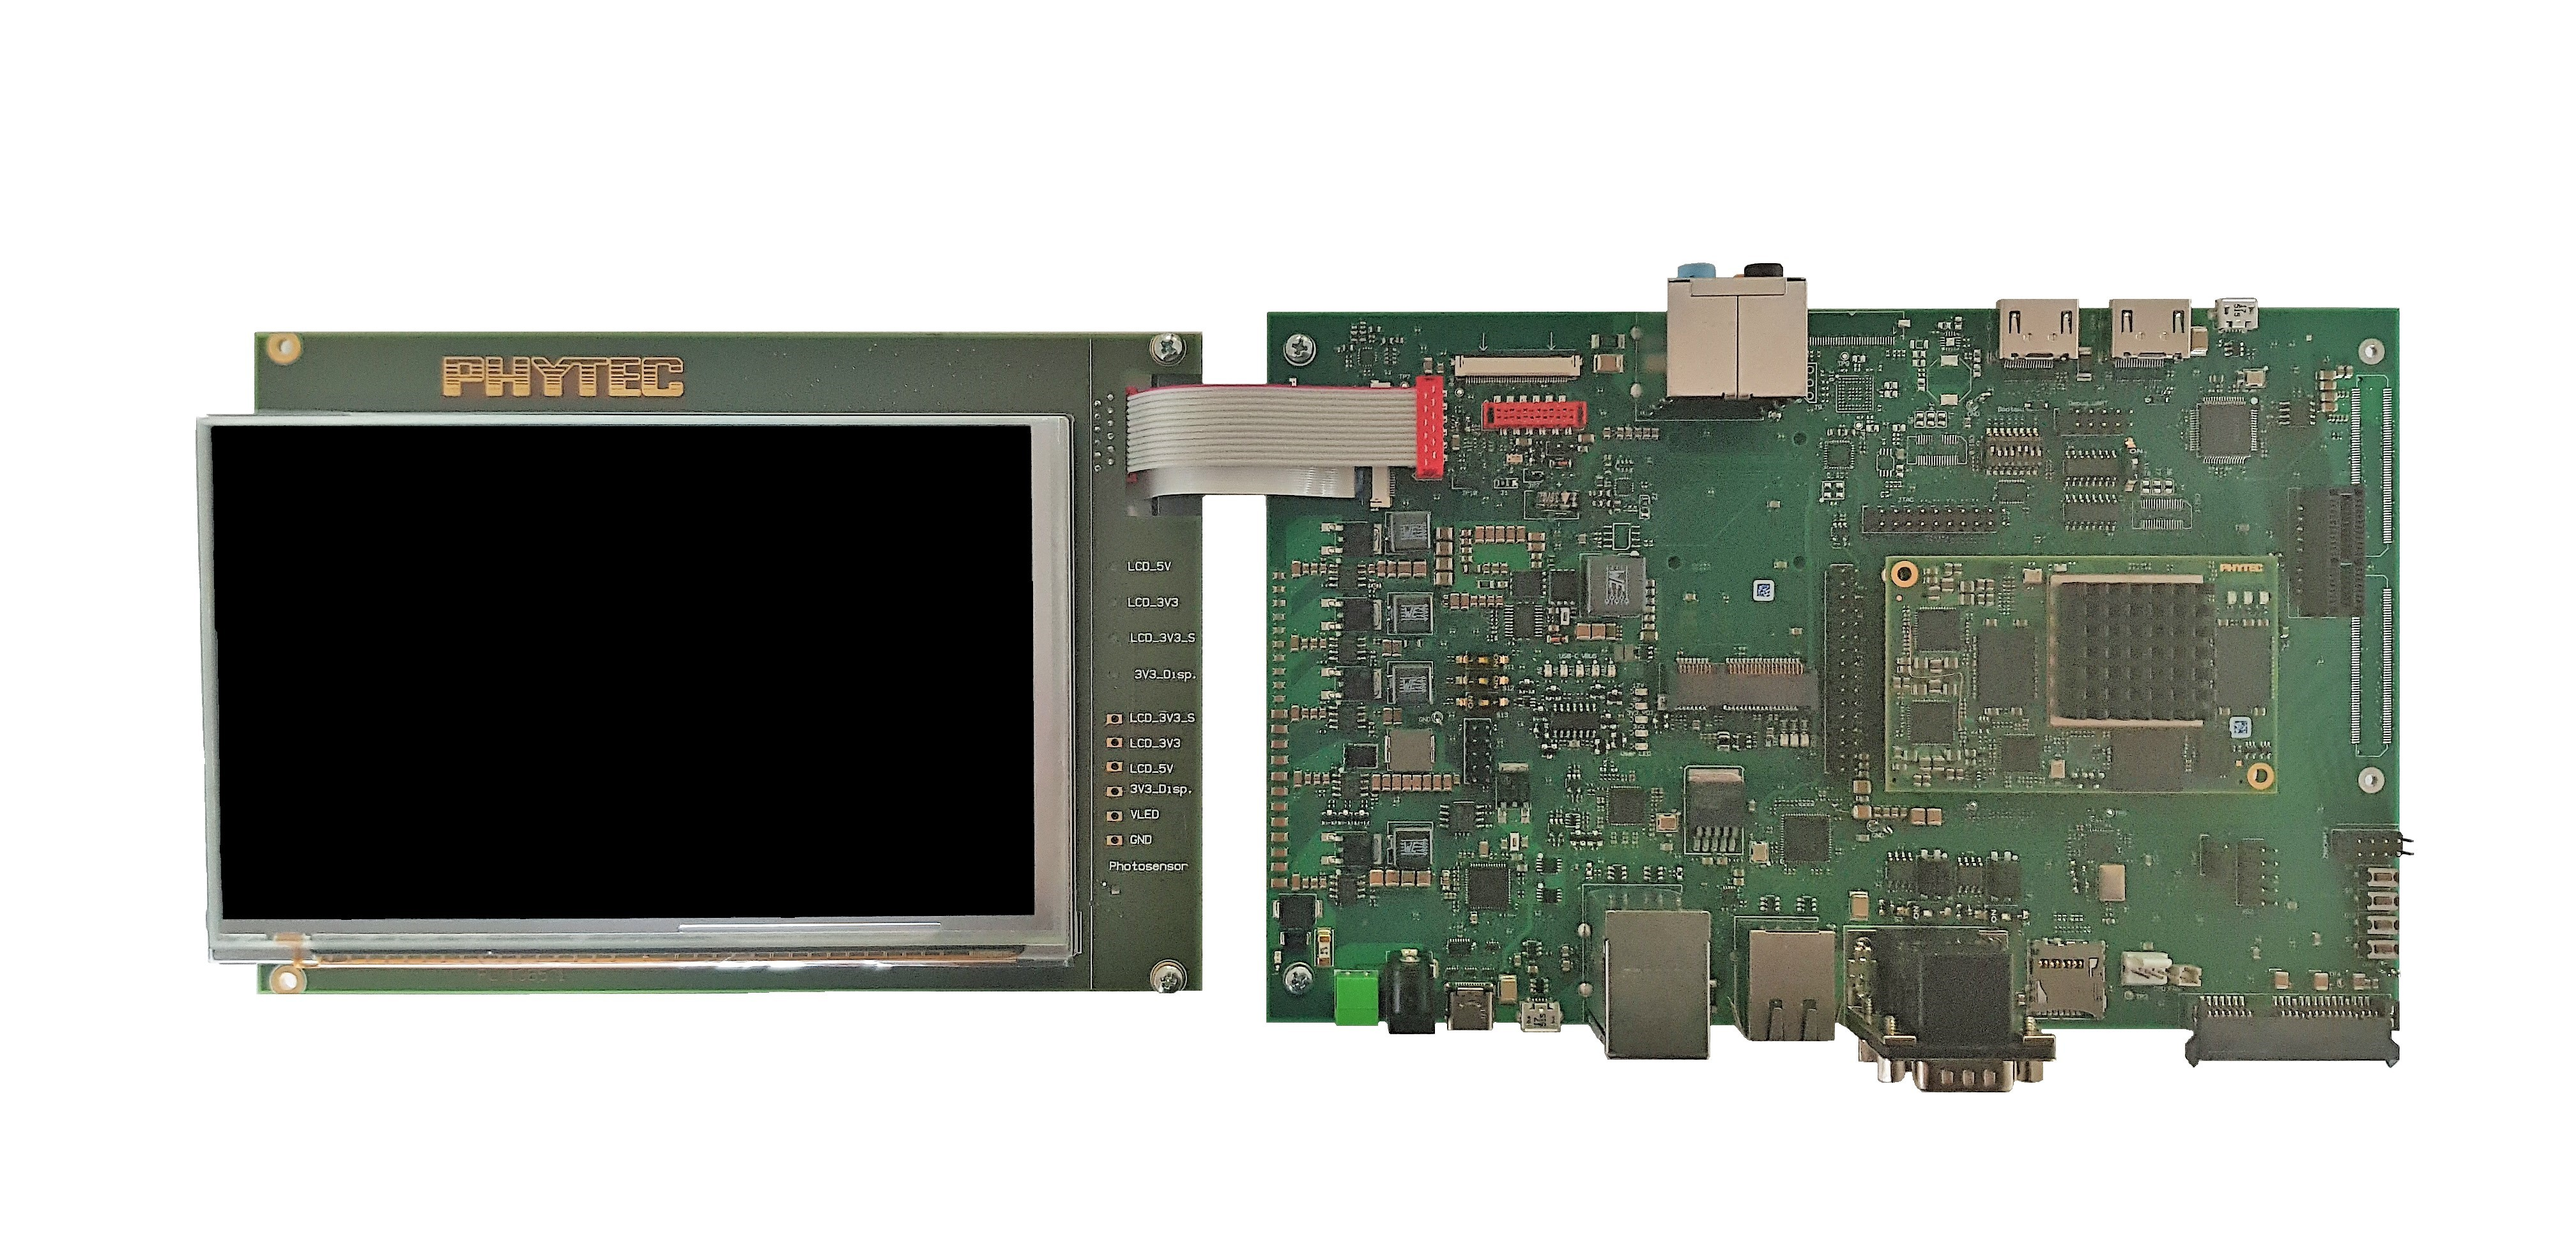 phyCORE i MX 8 with Carrier Board and Display